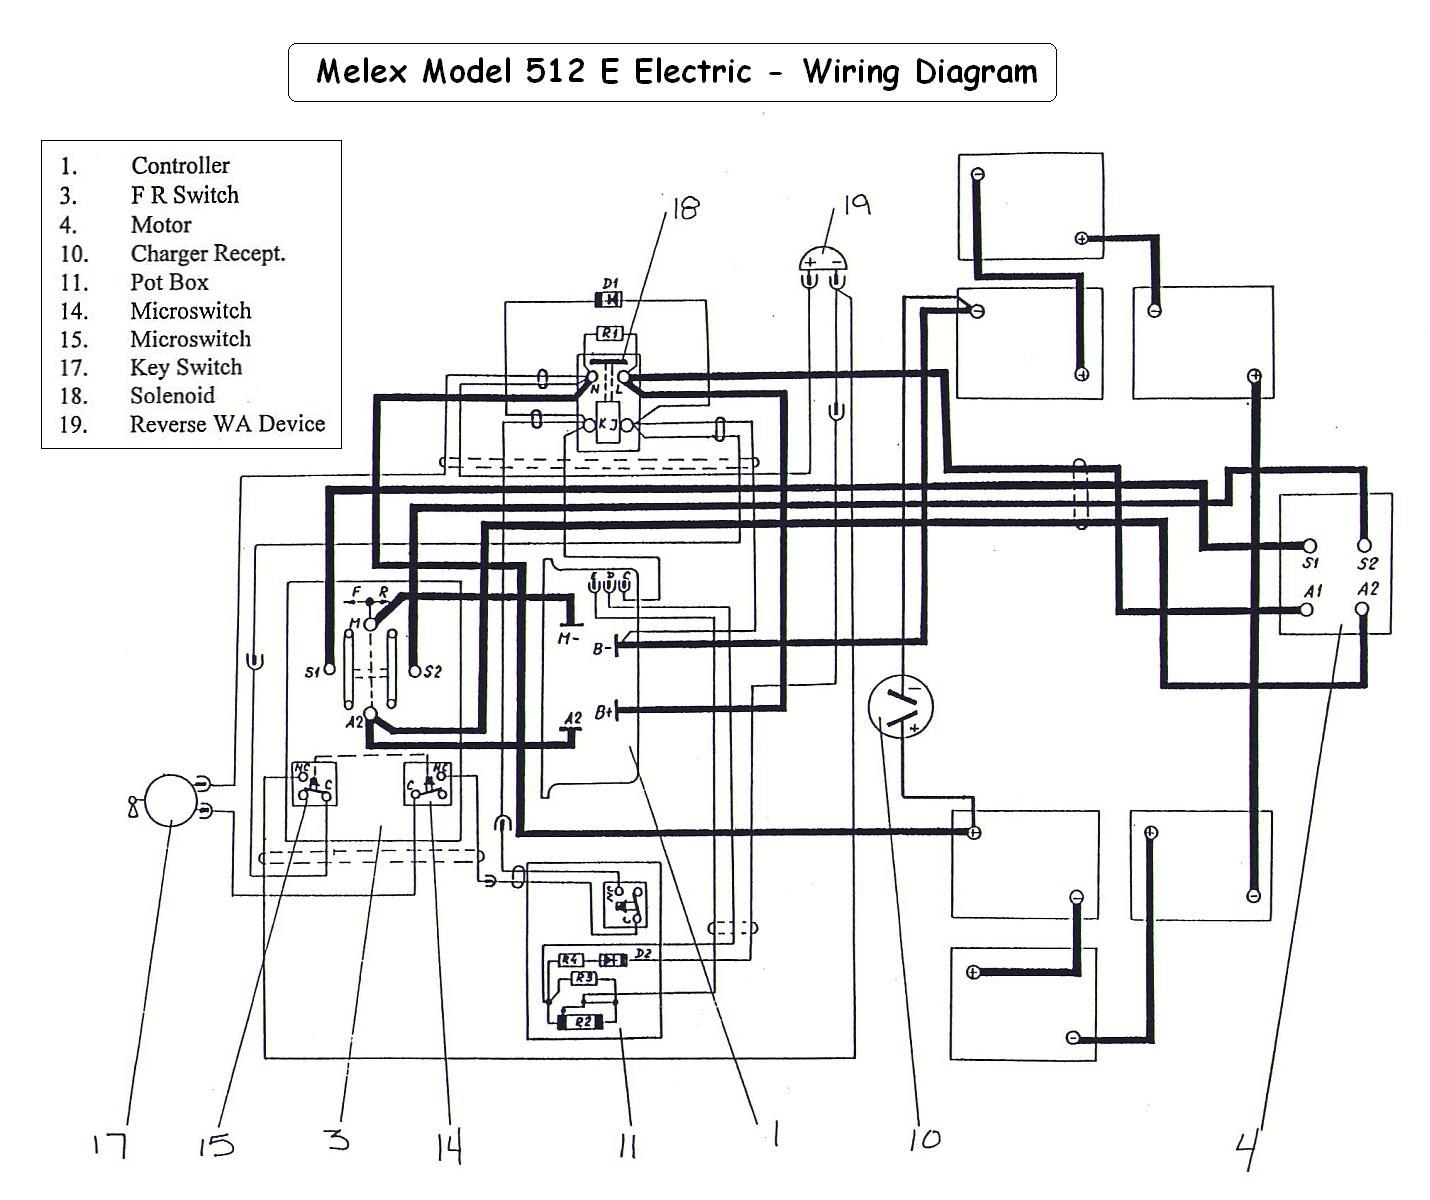 Melex512E_wiring_diagram vintagegolfcartparts com columbia golf cart wiring diagram gas at bayanpartner.co